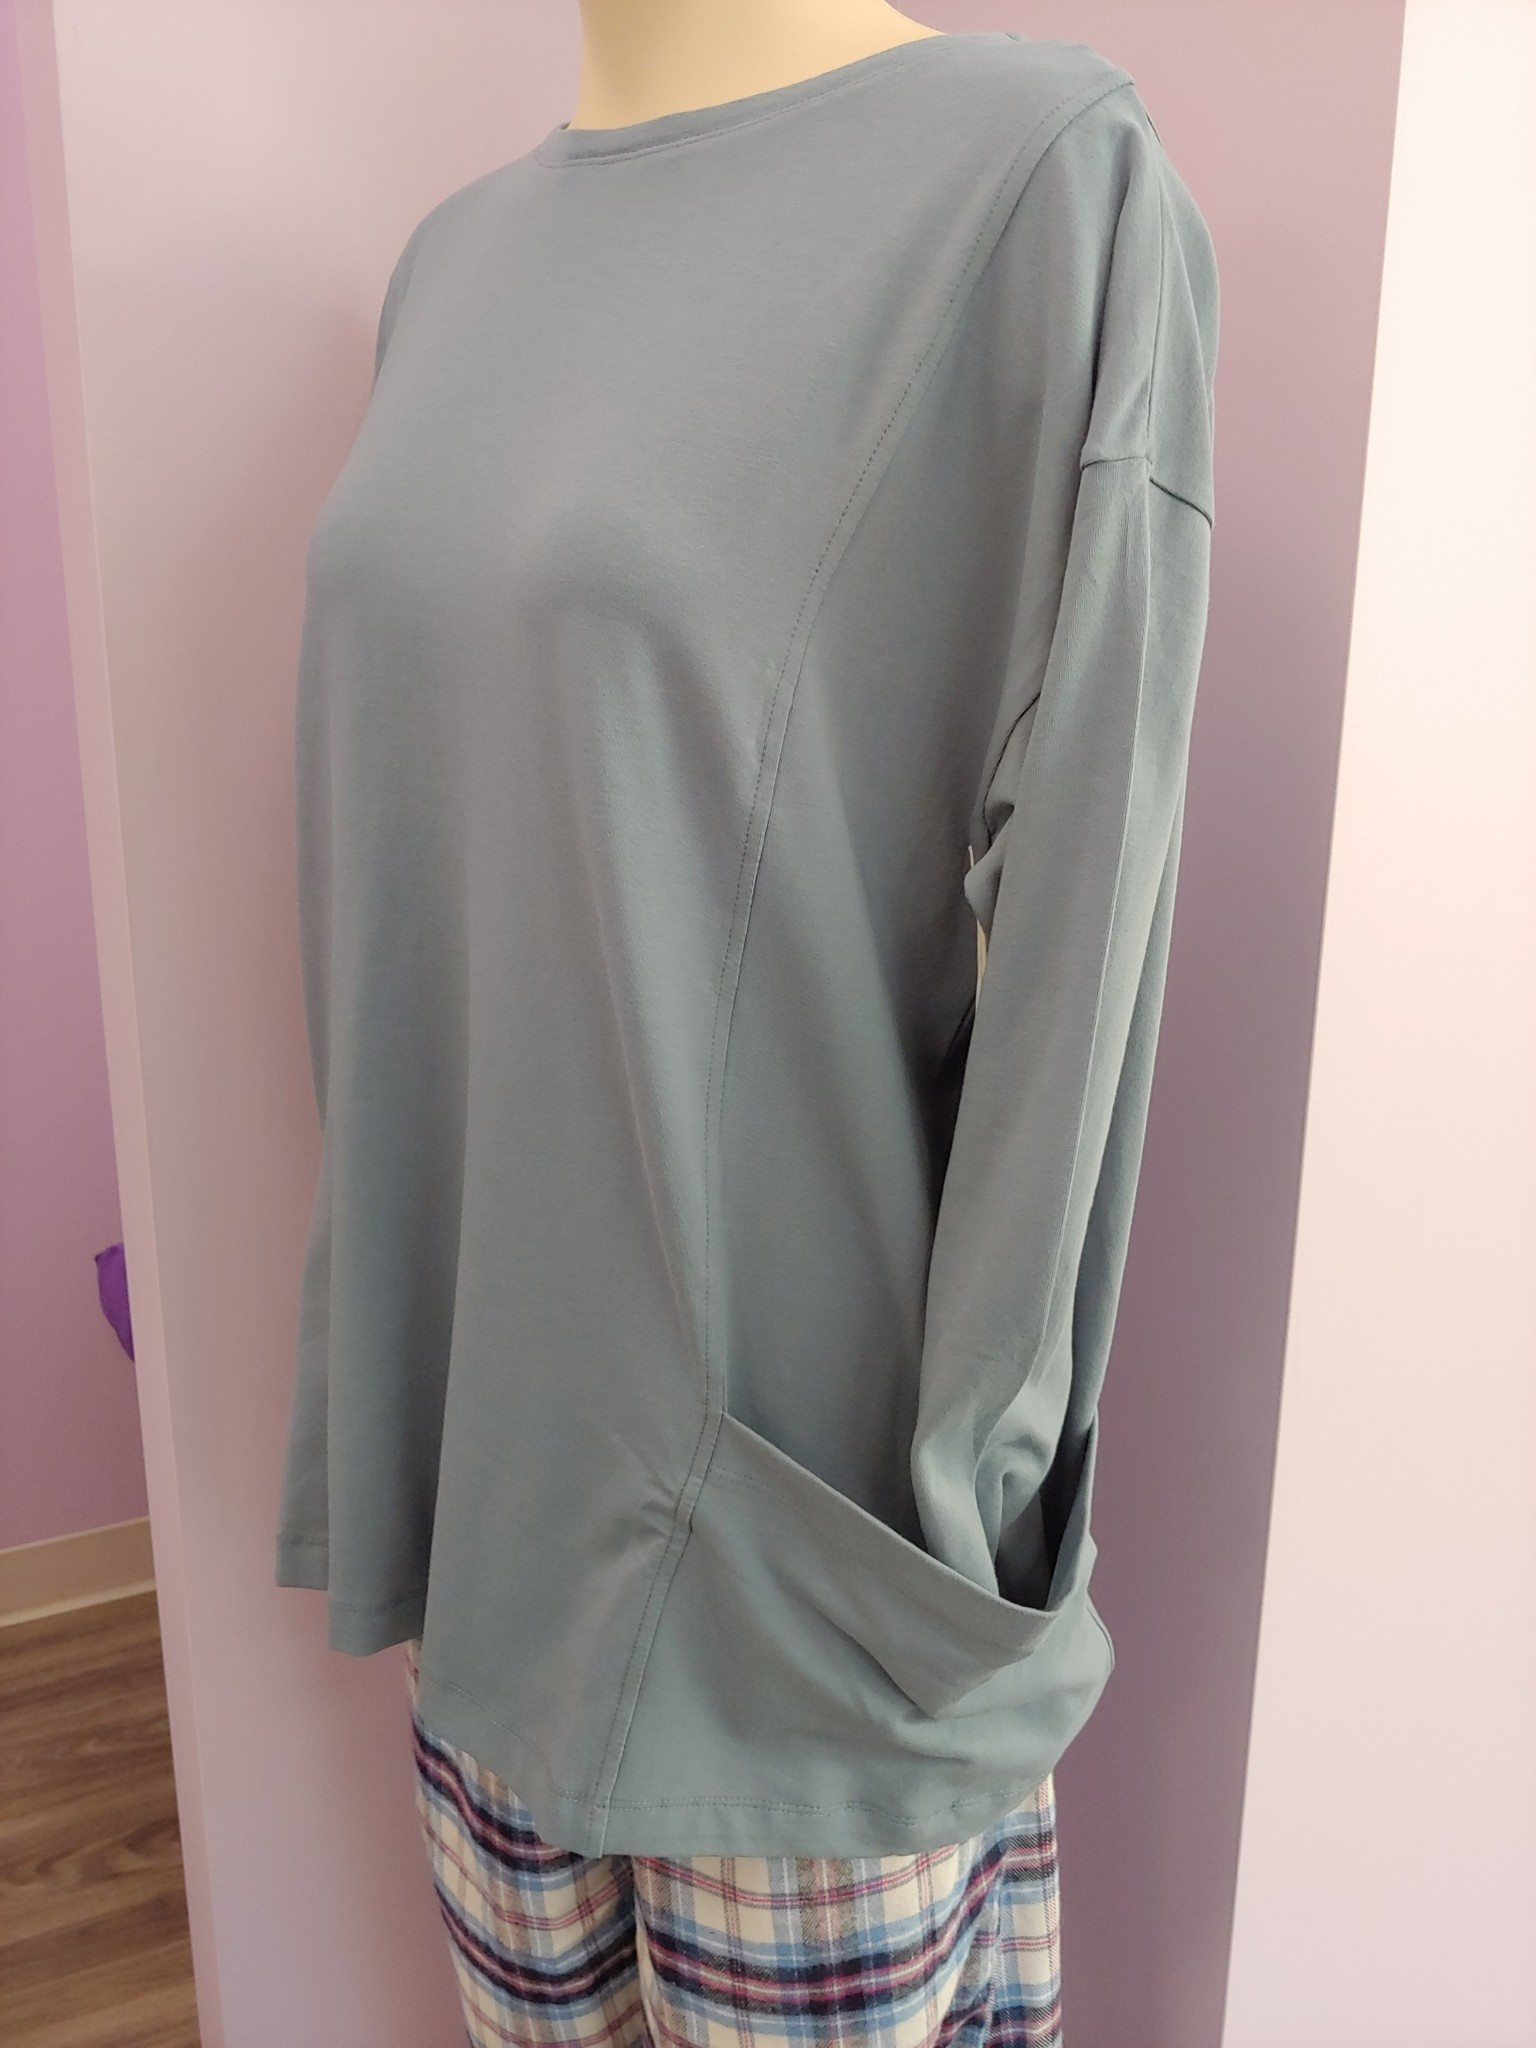 Ballet neck top with side pockets